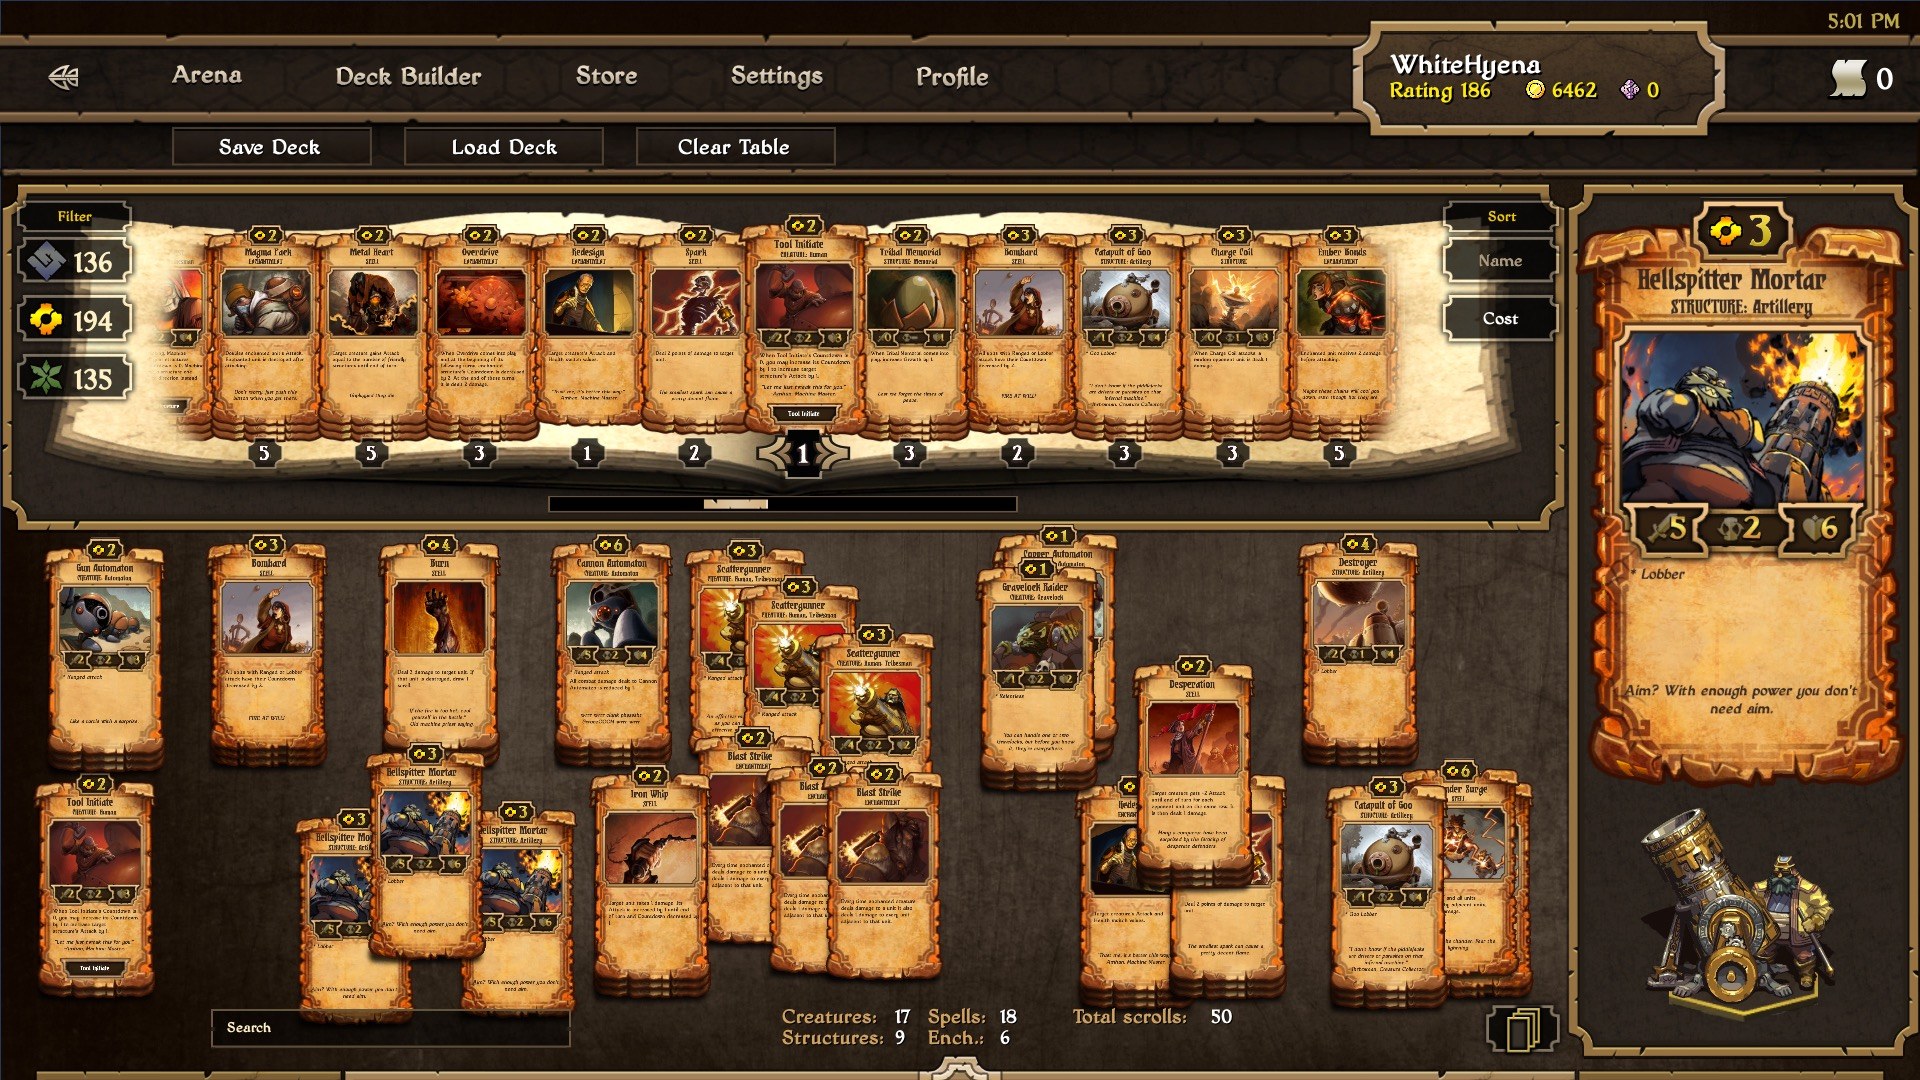 scrolls_screenshot_deck_-building-1